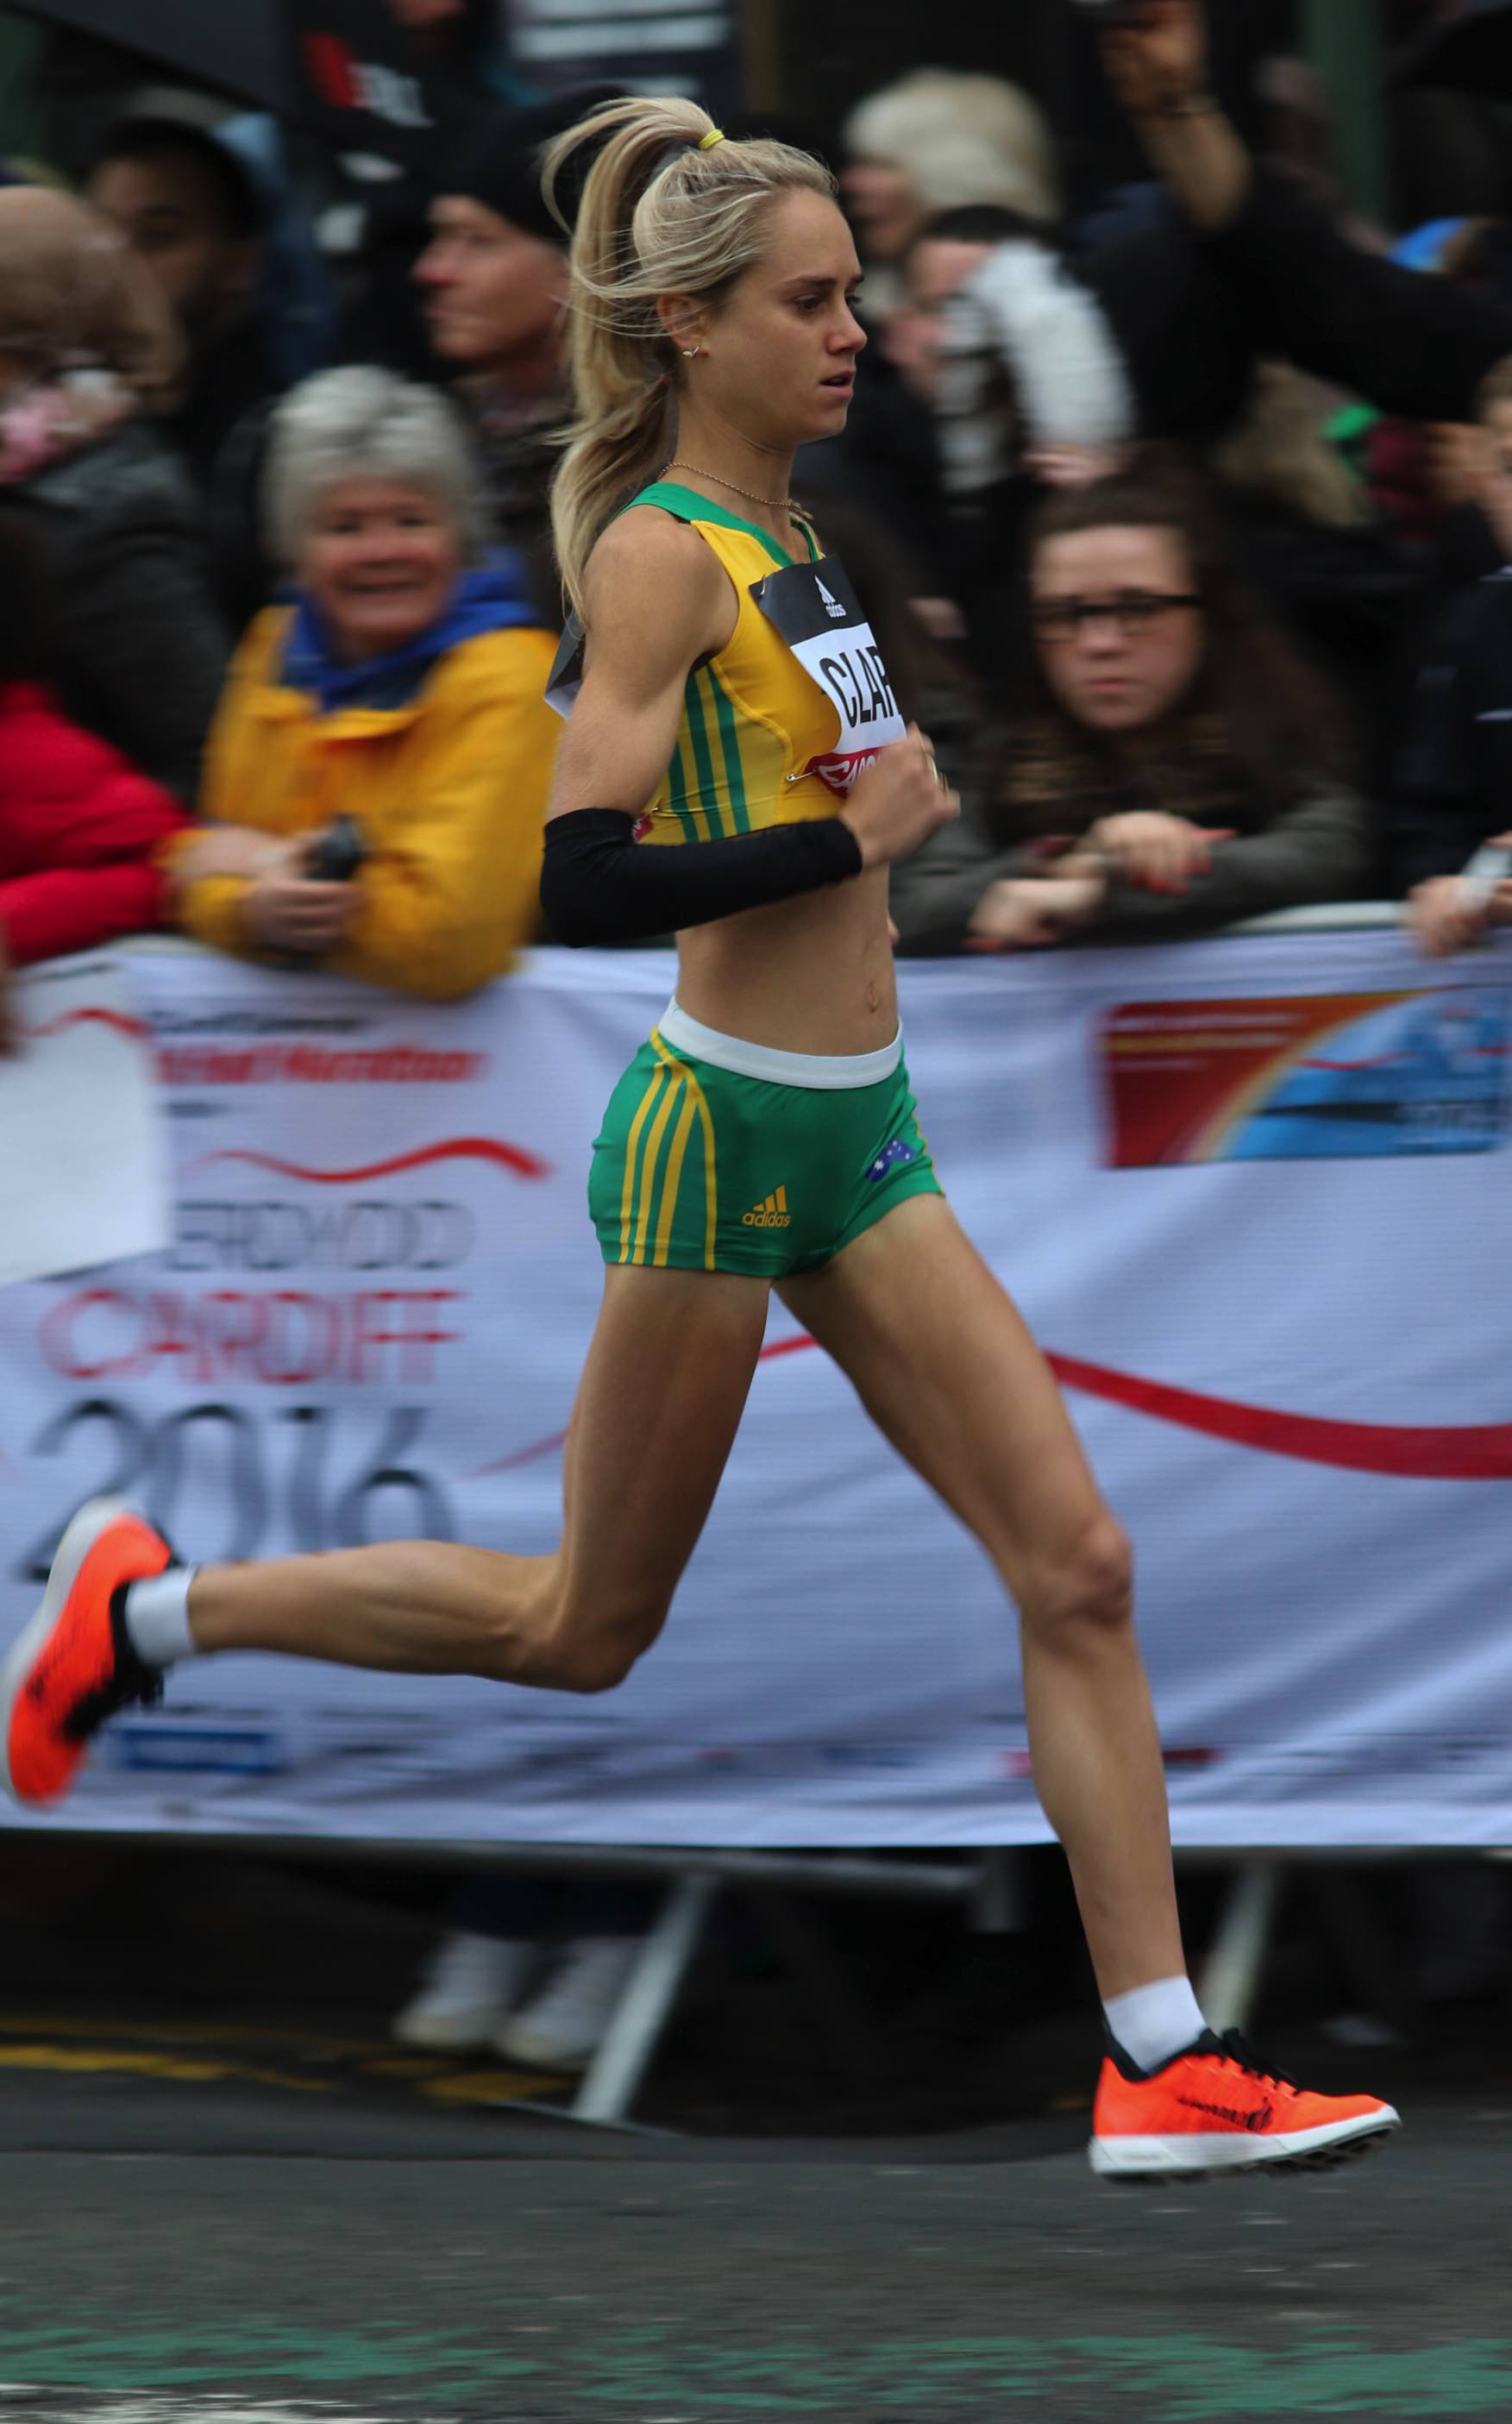 Milly Clark: World Half Marathon Championships: 1:10:48, Cardiff, 26 MAR 2016: Photo by Keith McClure